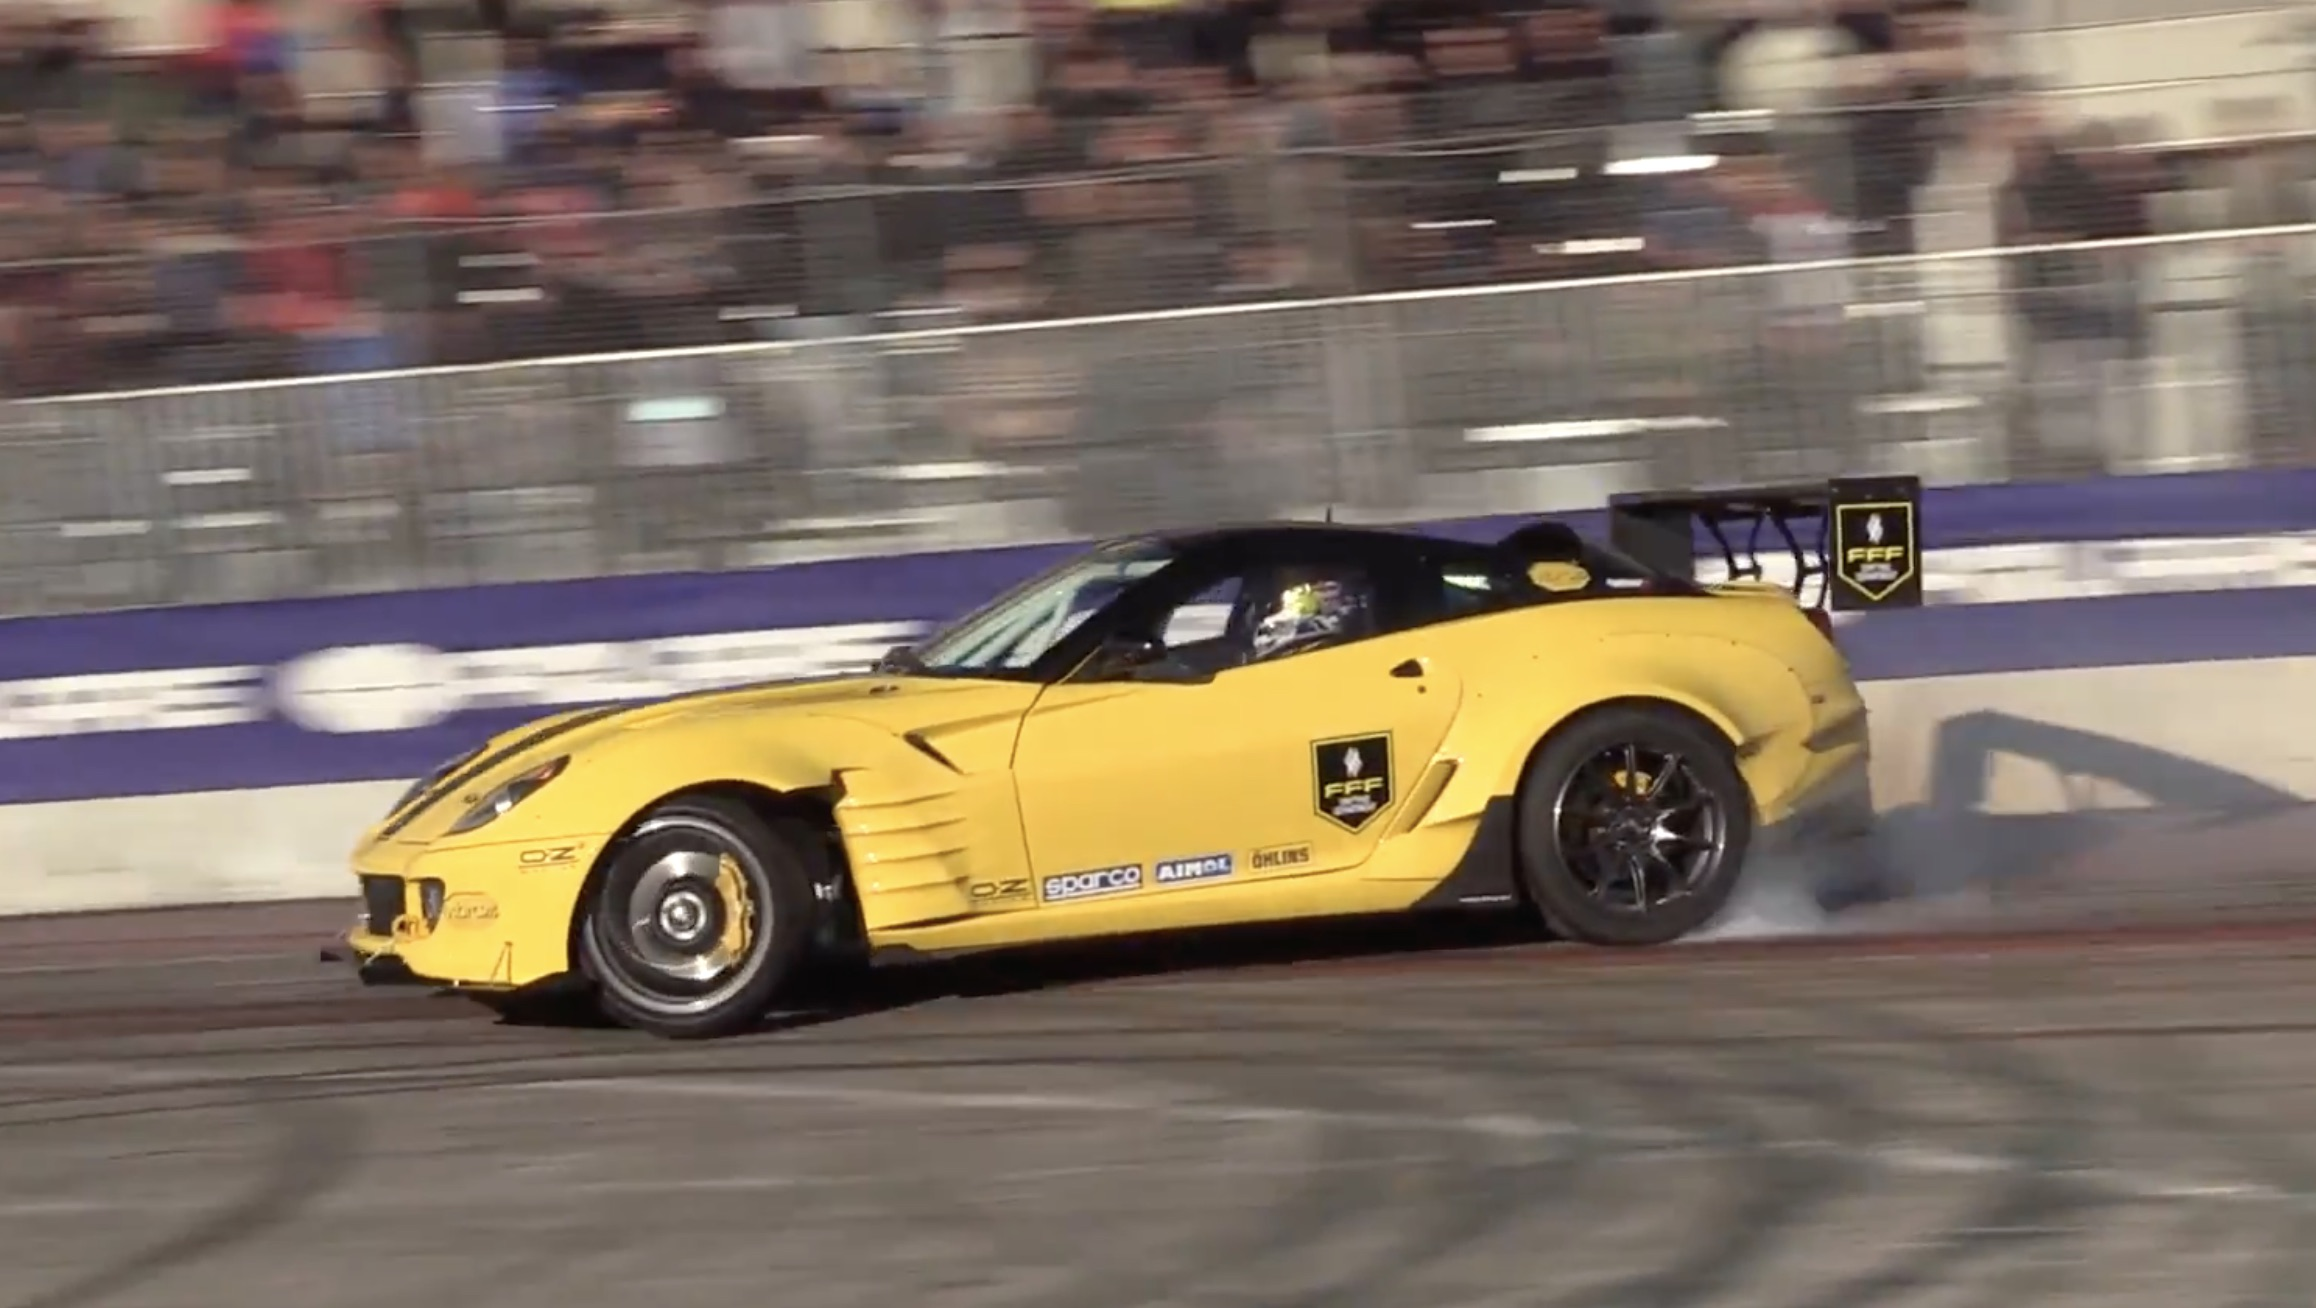 Morning Symphony: Now THIS Is How An Italian Is Supposed To Sing! Listen To This Twin-Supercharged Ferrari 599 Shriek!